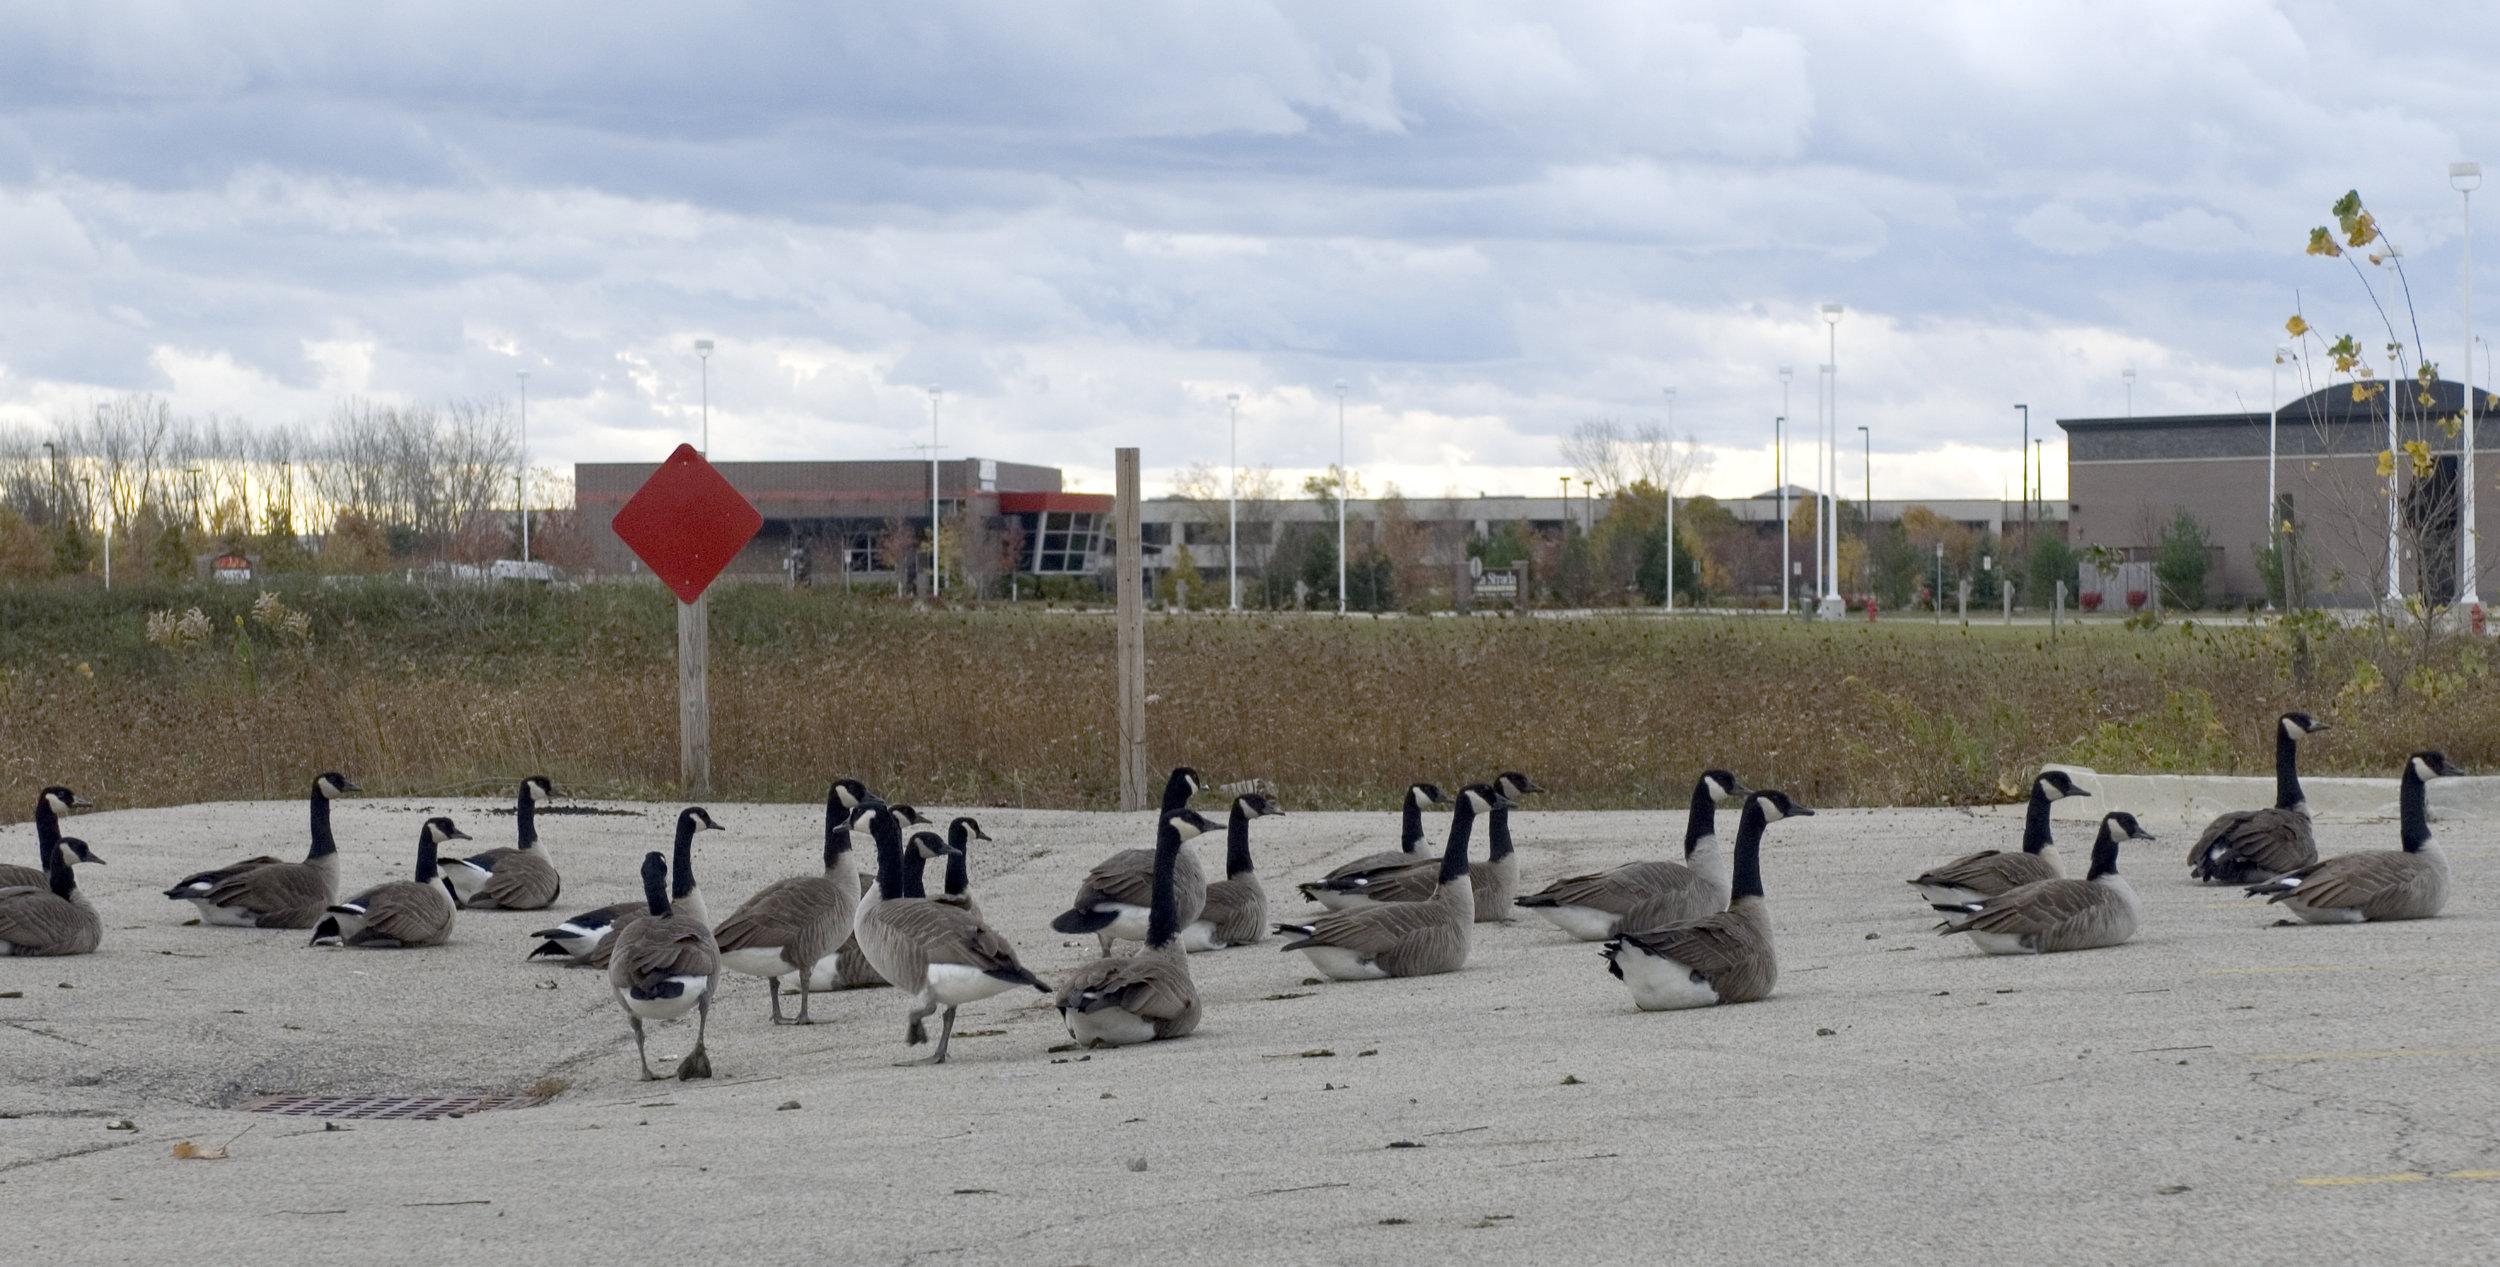 There will still be geese. Not these particular geese, though.  They'll all be killed in a Navy Pier Ferris Wheel accident.